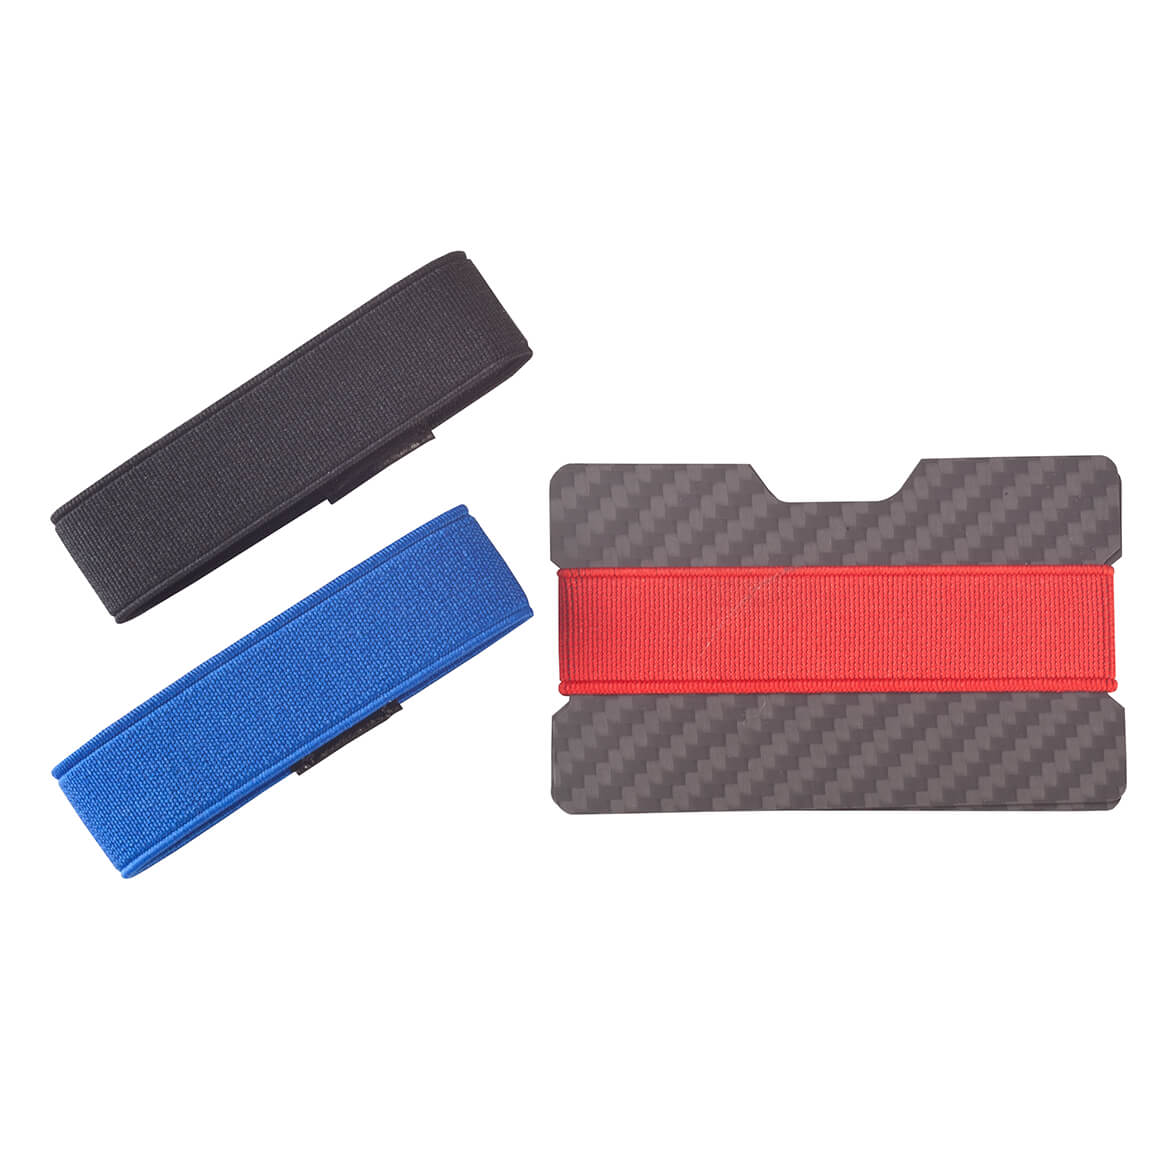 RFID Card Holder with Strap Set of 3-361708